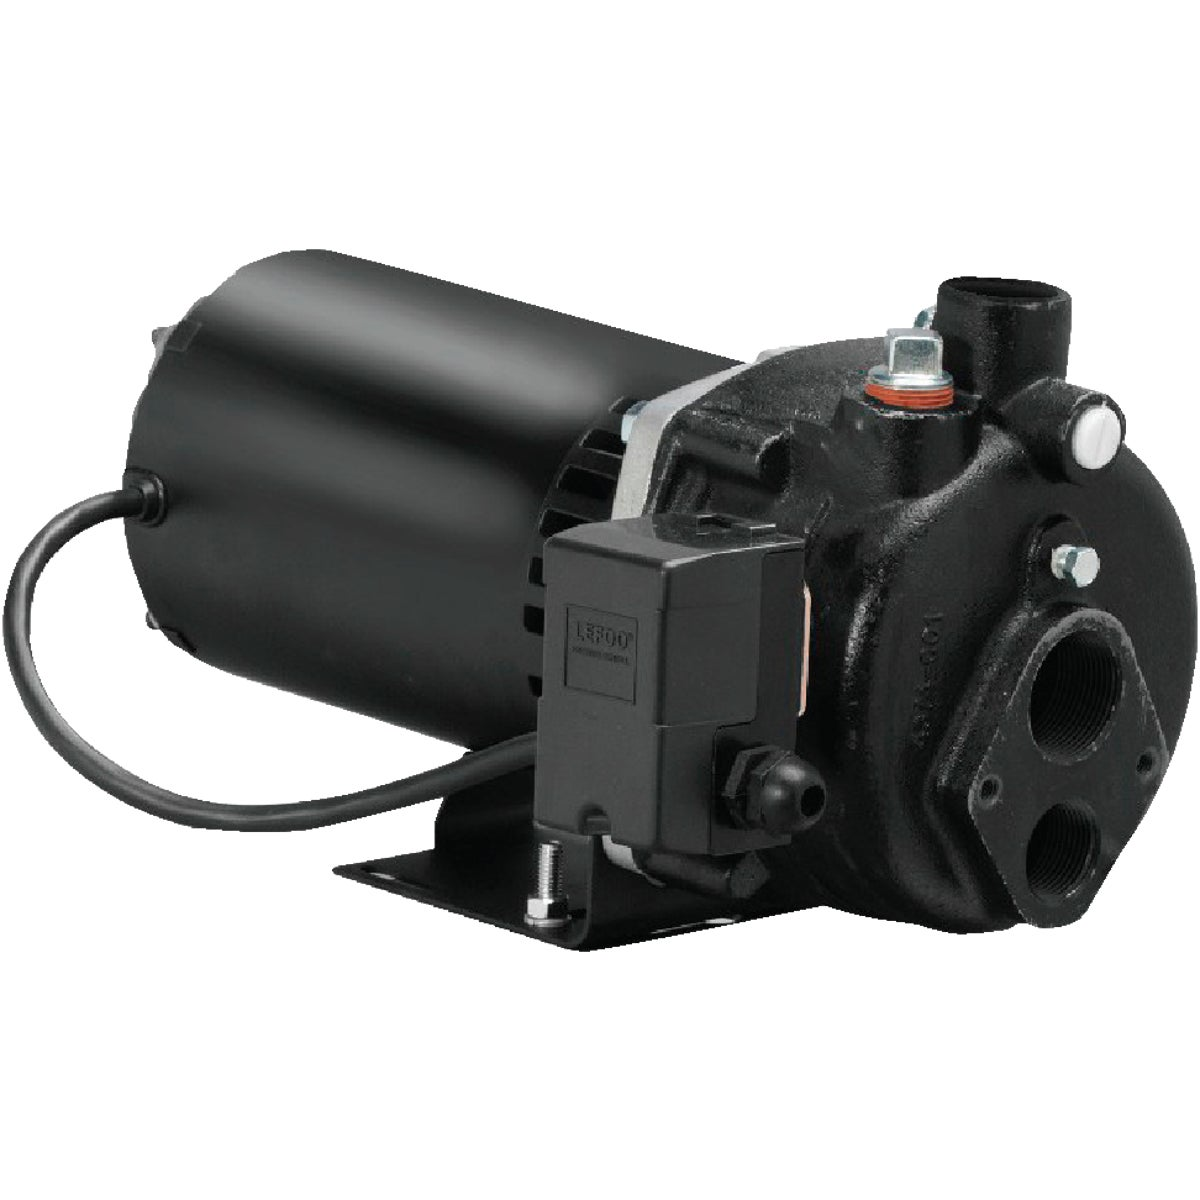 1/2HP CONV JET WELL PUMP